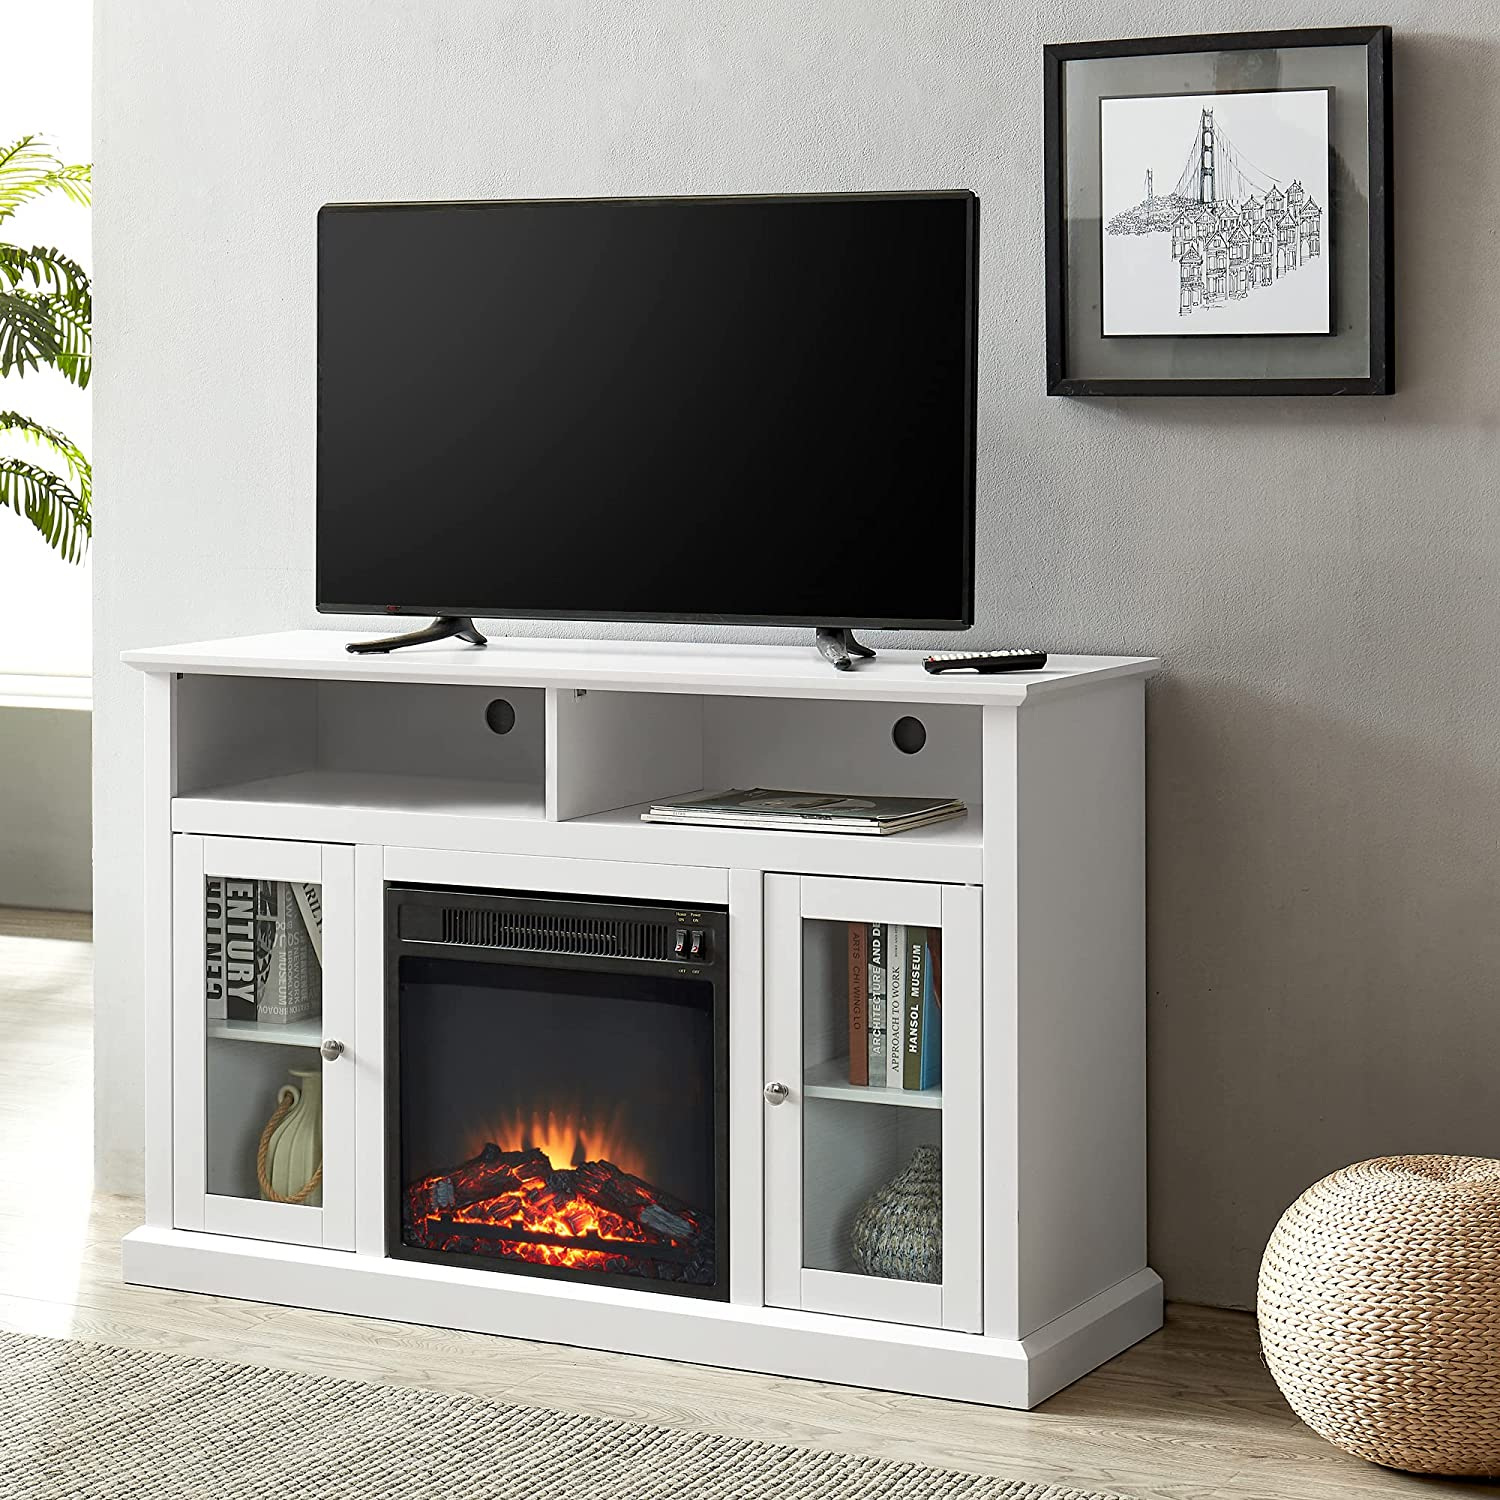 GOOD & GRACIOUS Mid Century Modern Electric Fireplace TV Stand, Fit up to  20